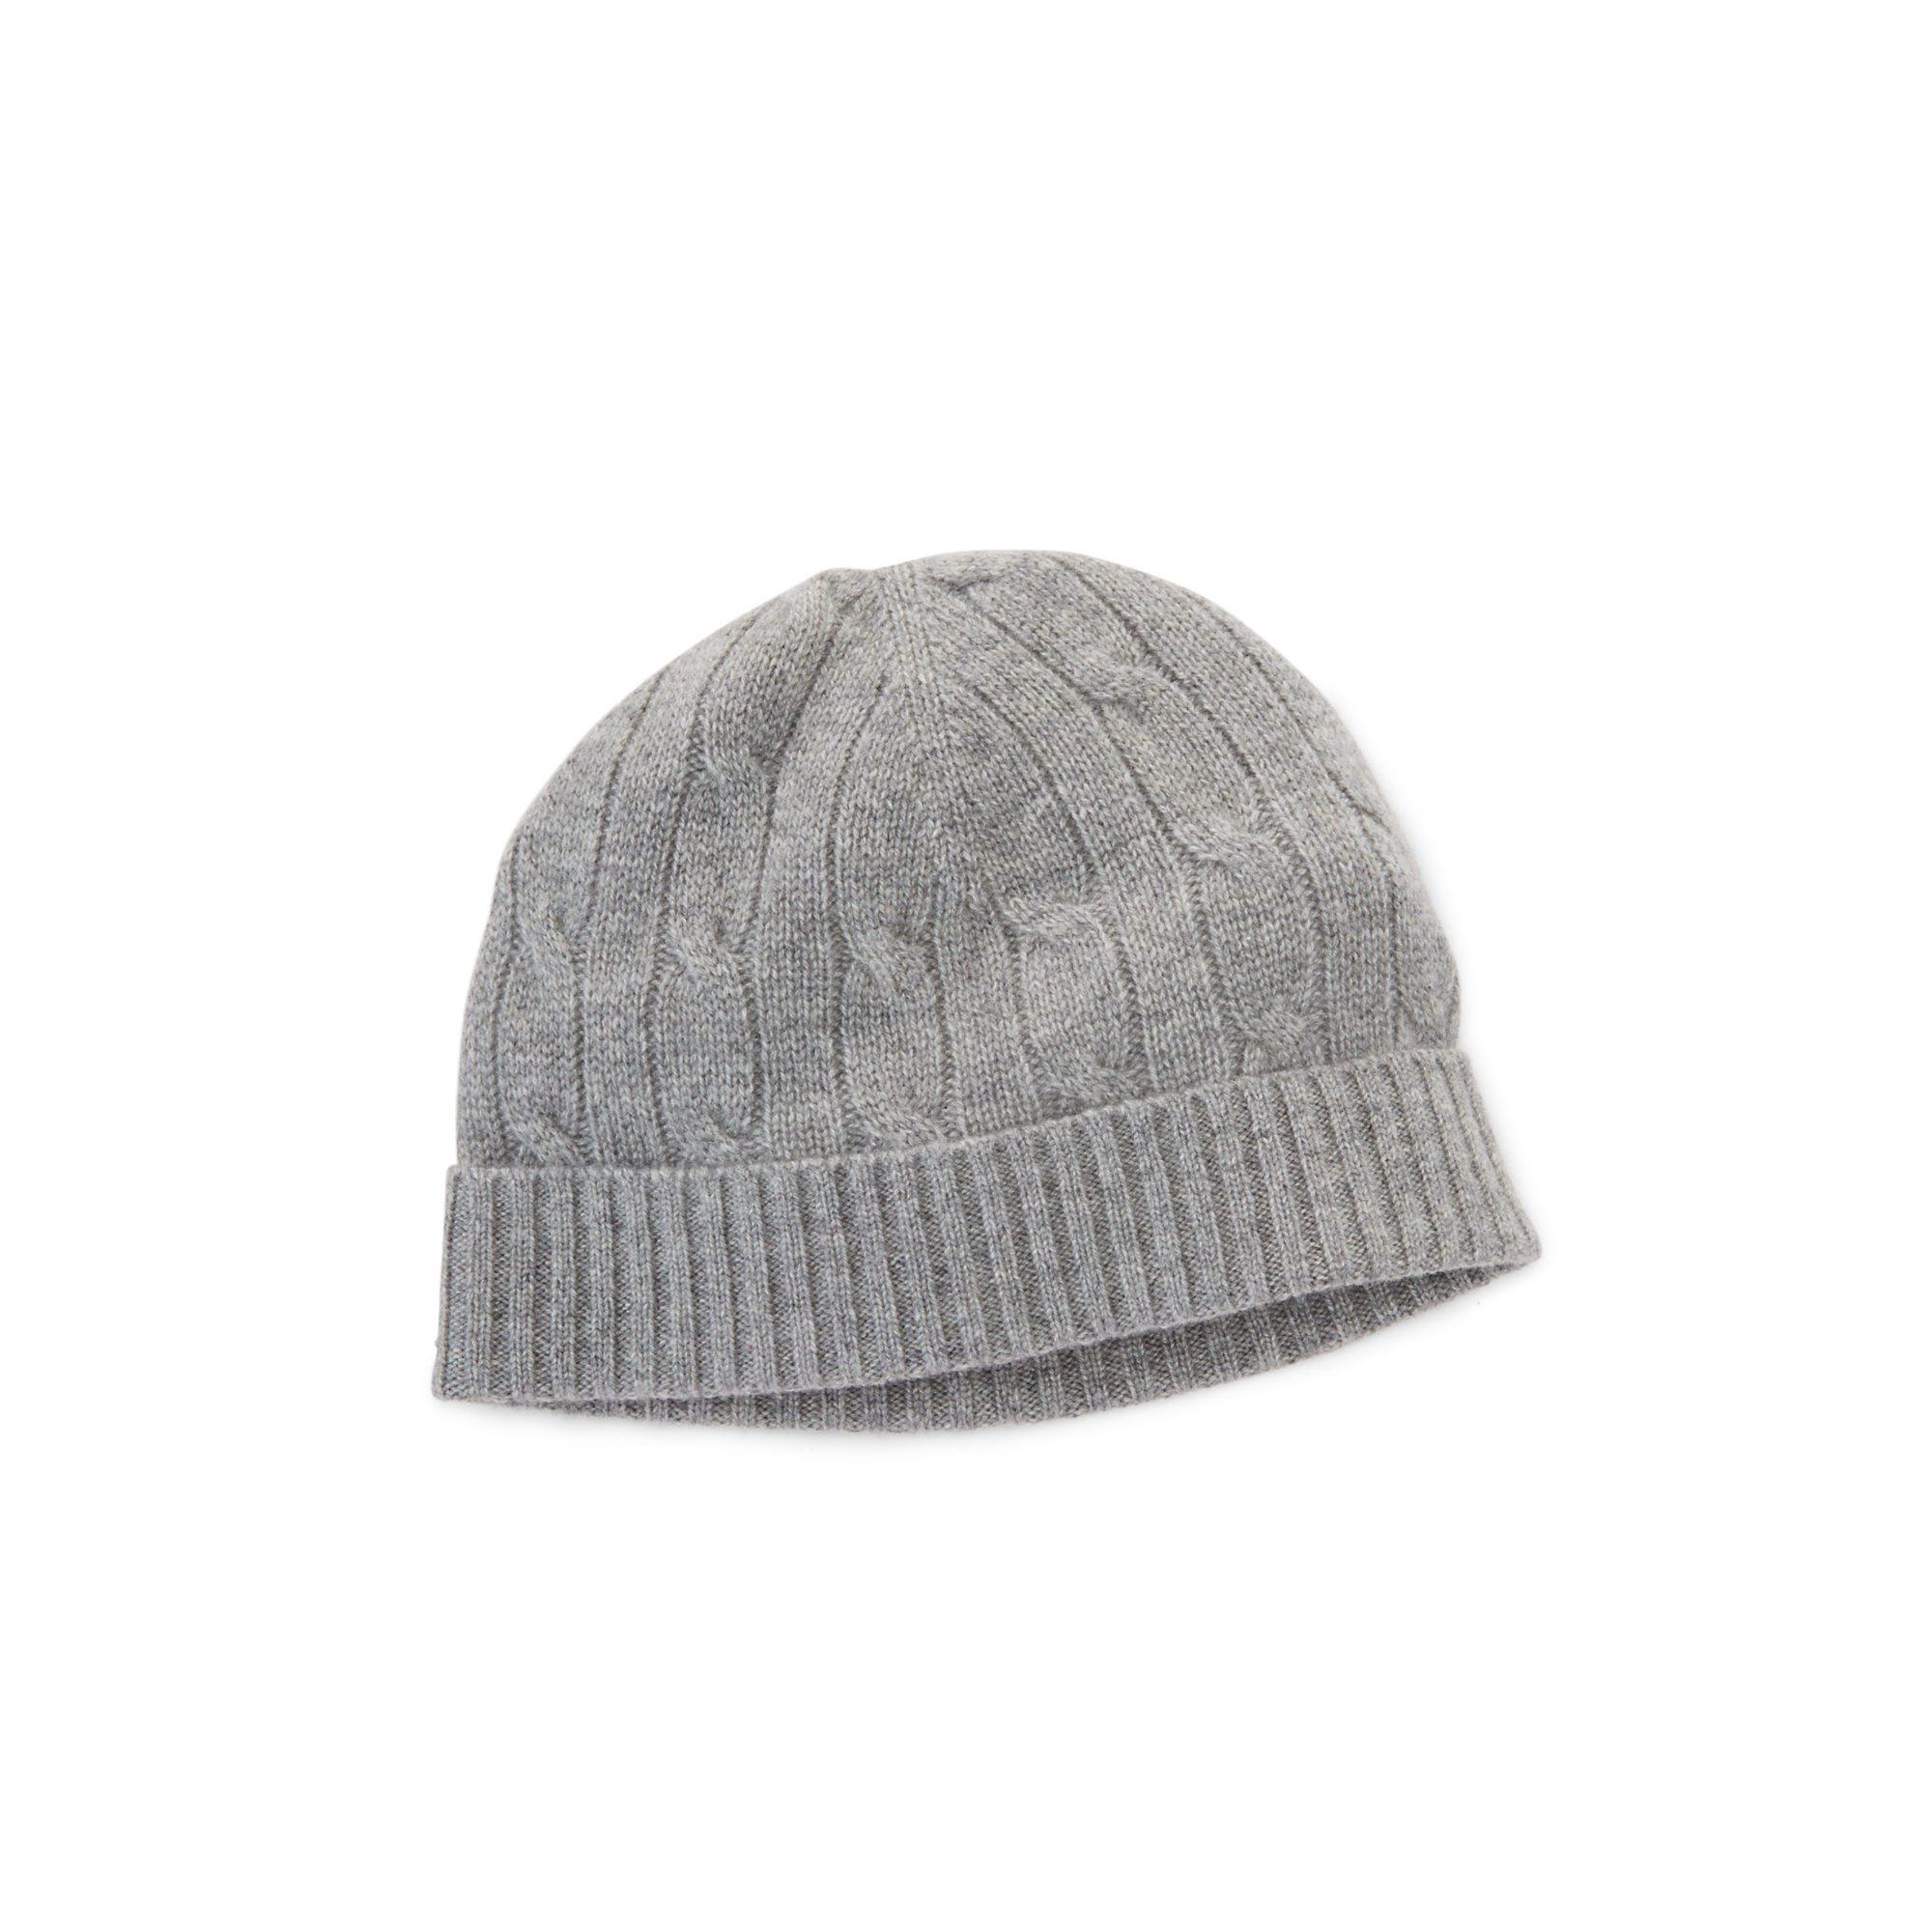 Lyst - Ralph Lauren Cable-knit Cashmere Beanie in Gray d059f4907ef